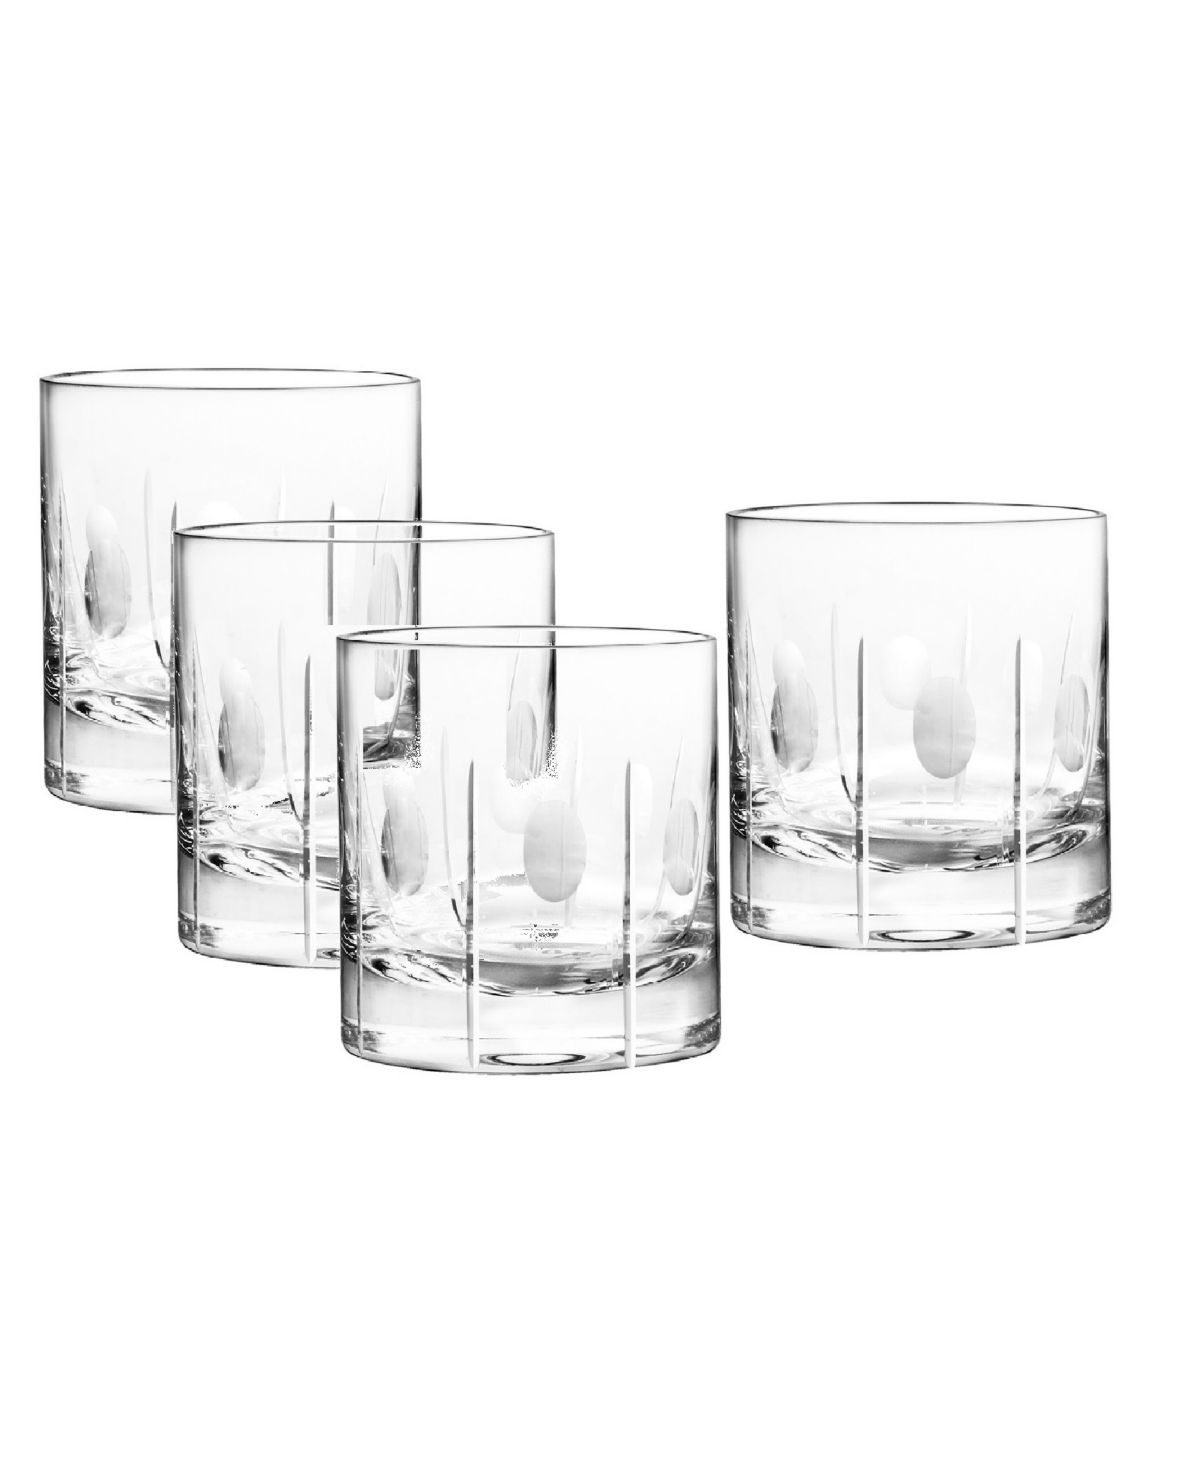 Qualia Glass Gulfstream Double Old Fashioned Glasses Set Of 4 In 2020 With Images